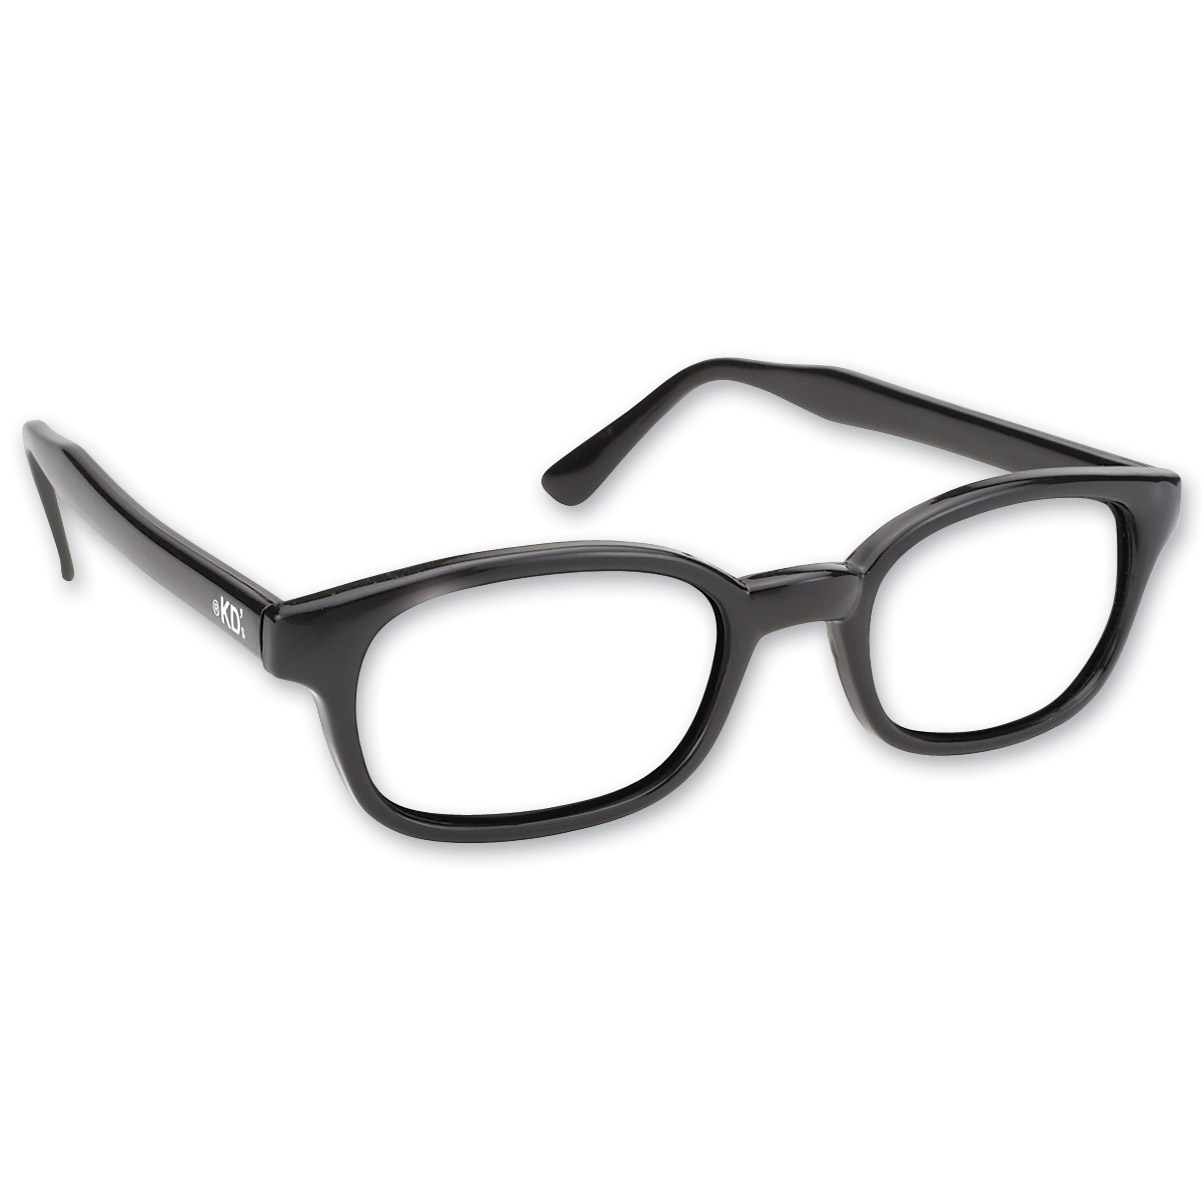 Original KD's Sunglasses-Black Frame with Clear Lens